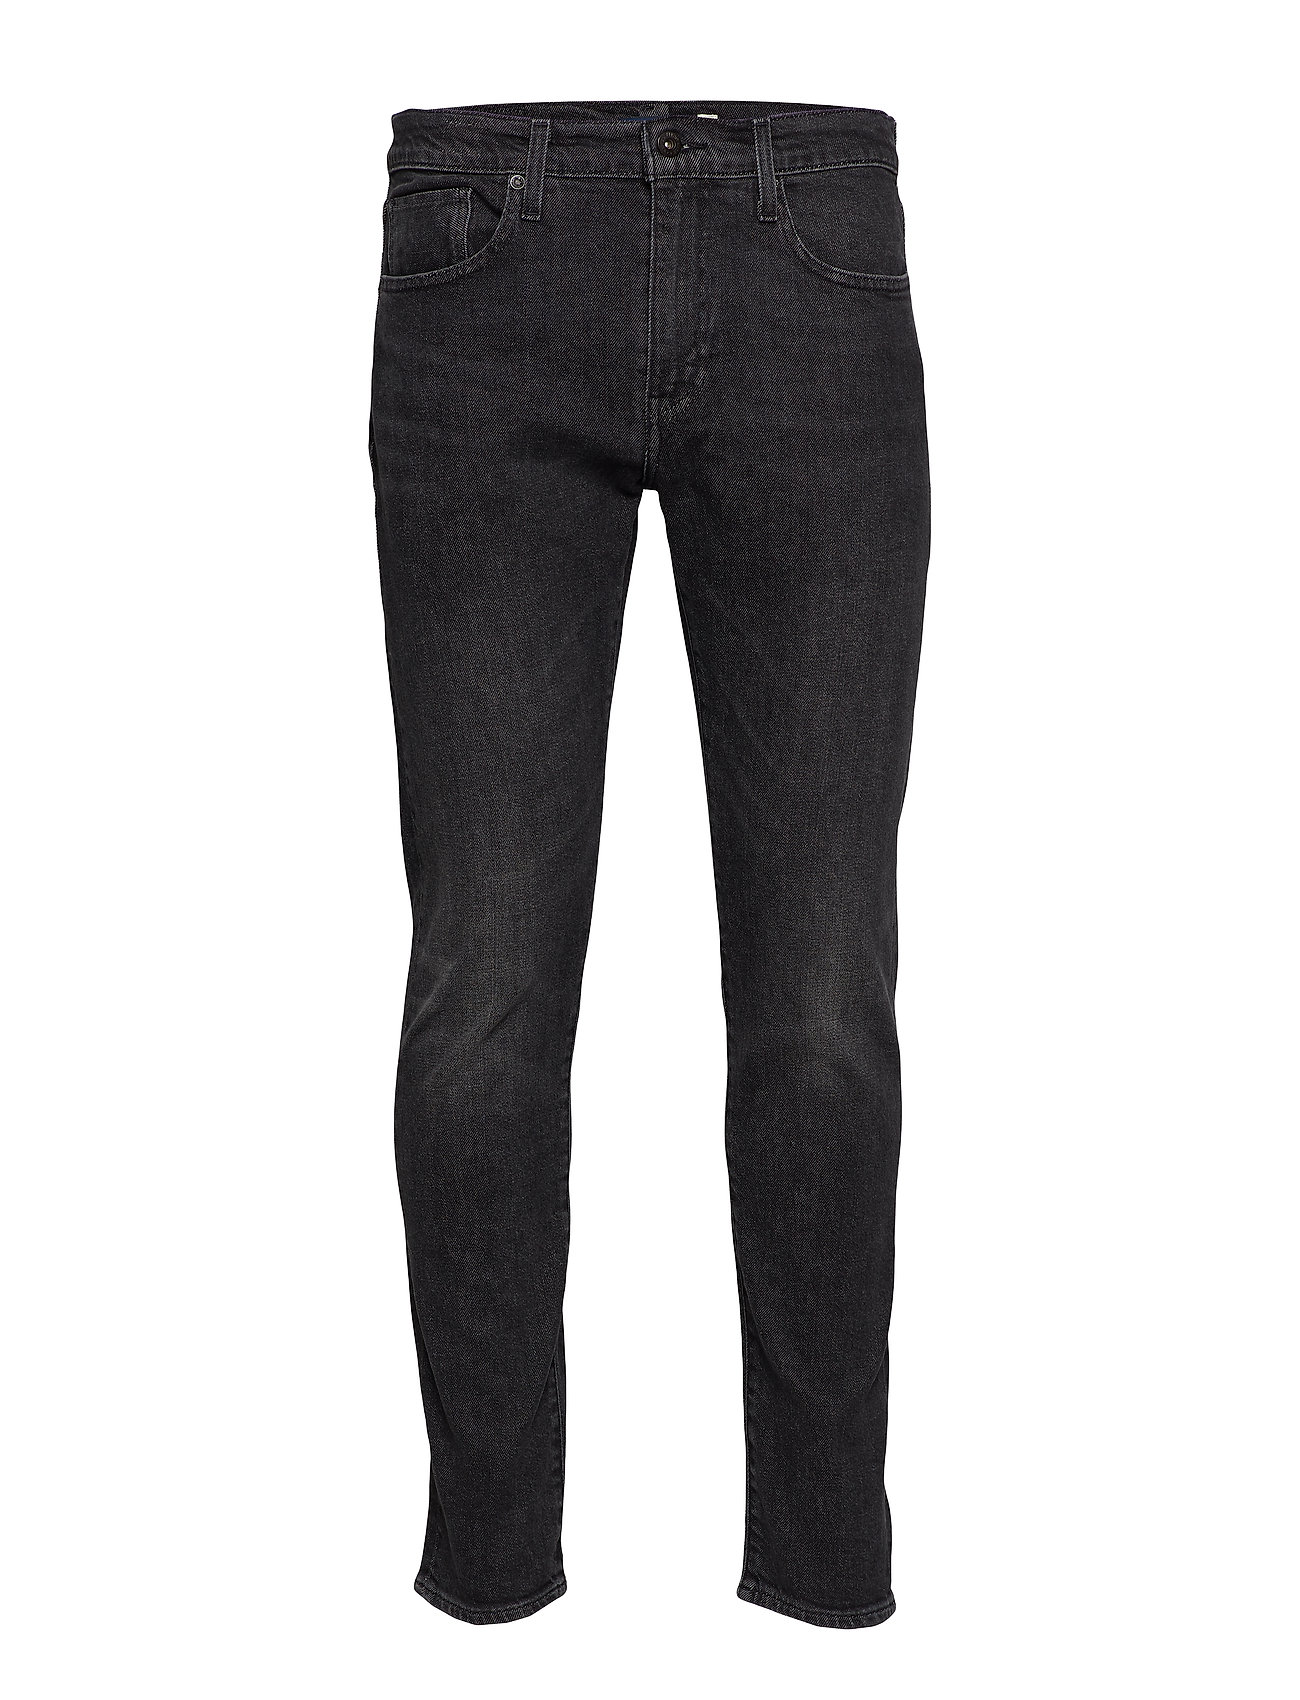 LEVI'S Lmc 512 Lmc Crucible Slim Jeans Grau LEVI'S MADE & CRAFTED